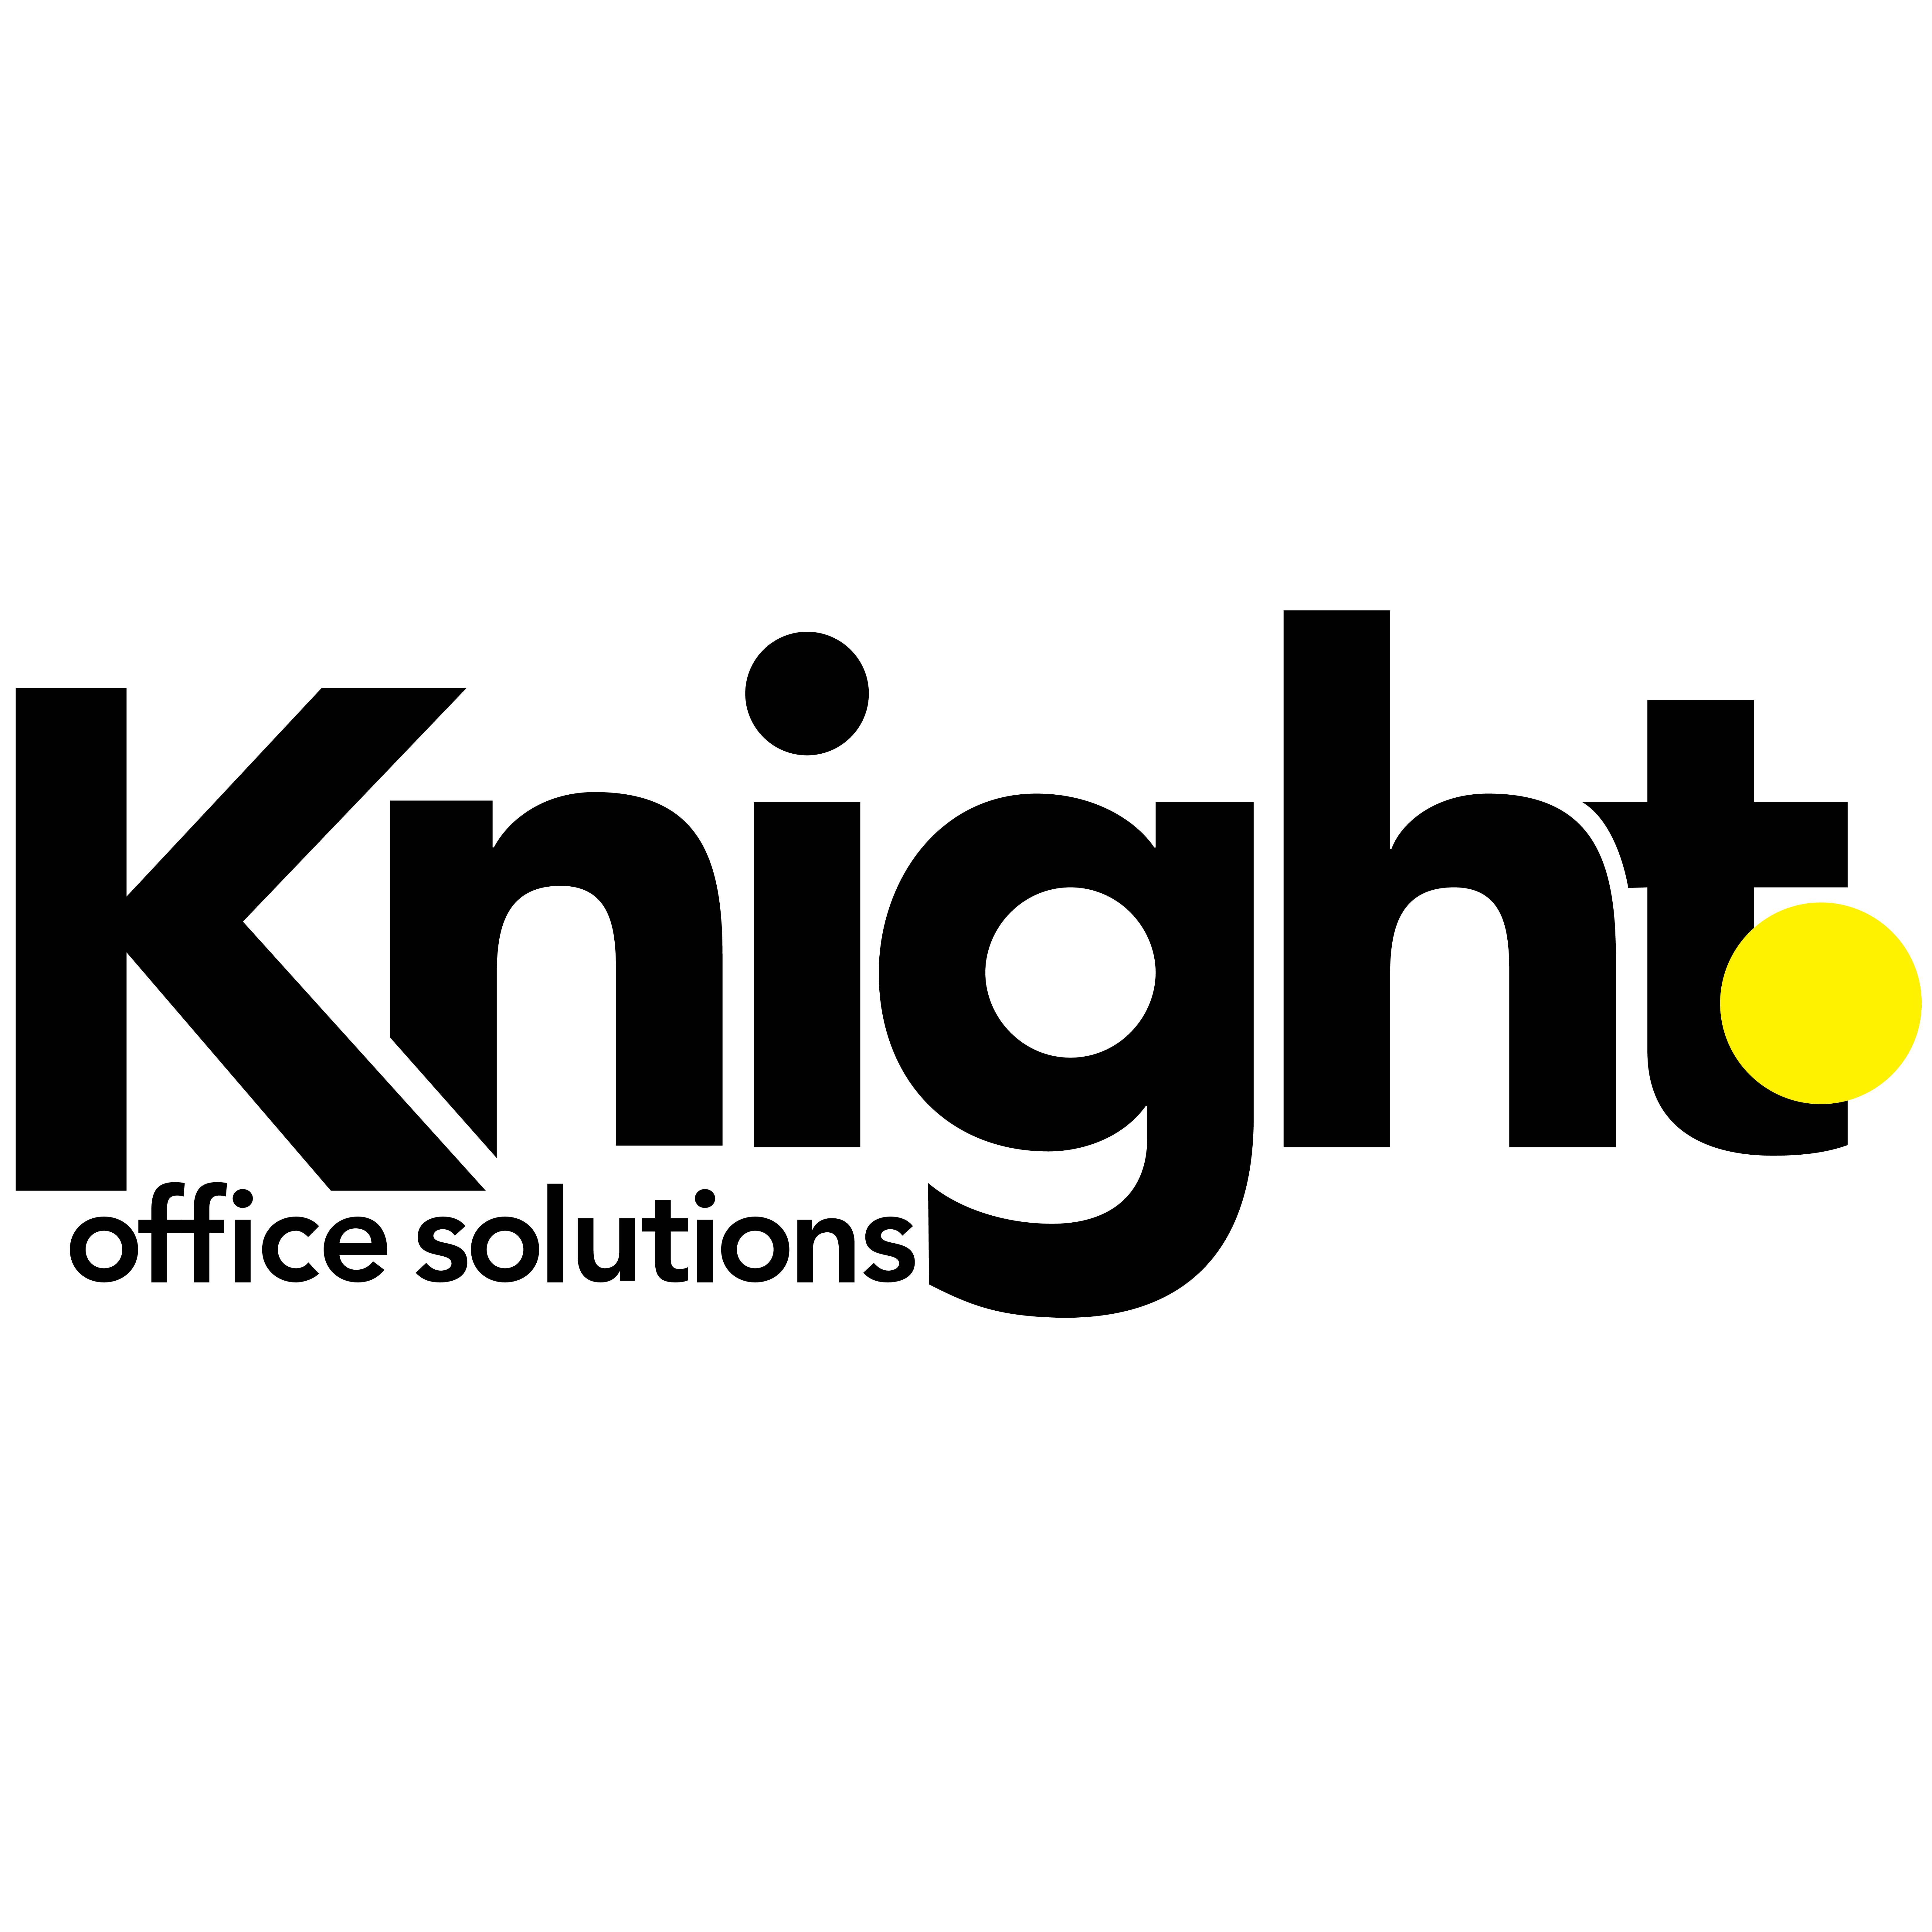 Knight Office Solutions